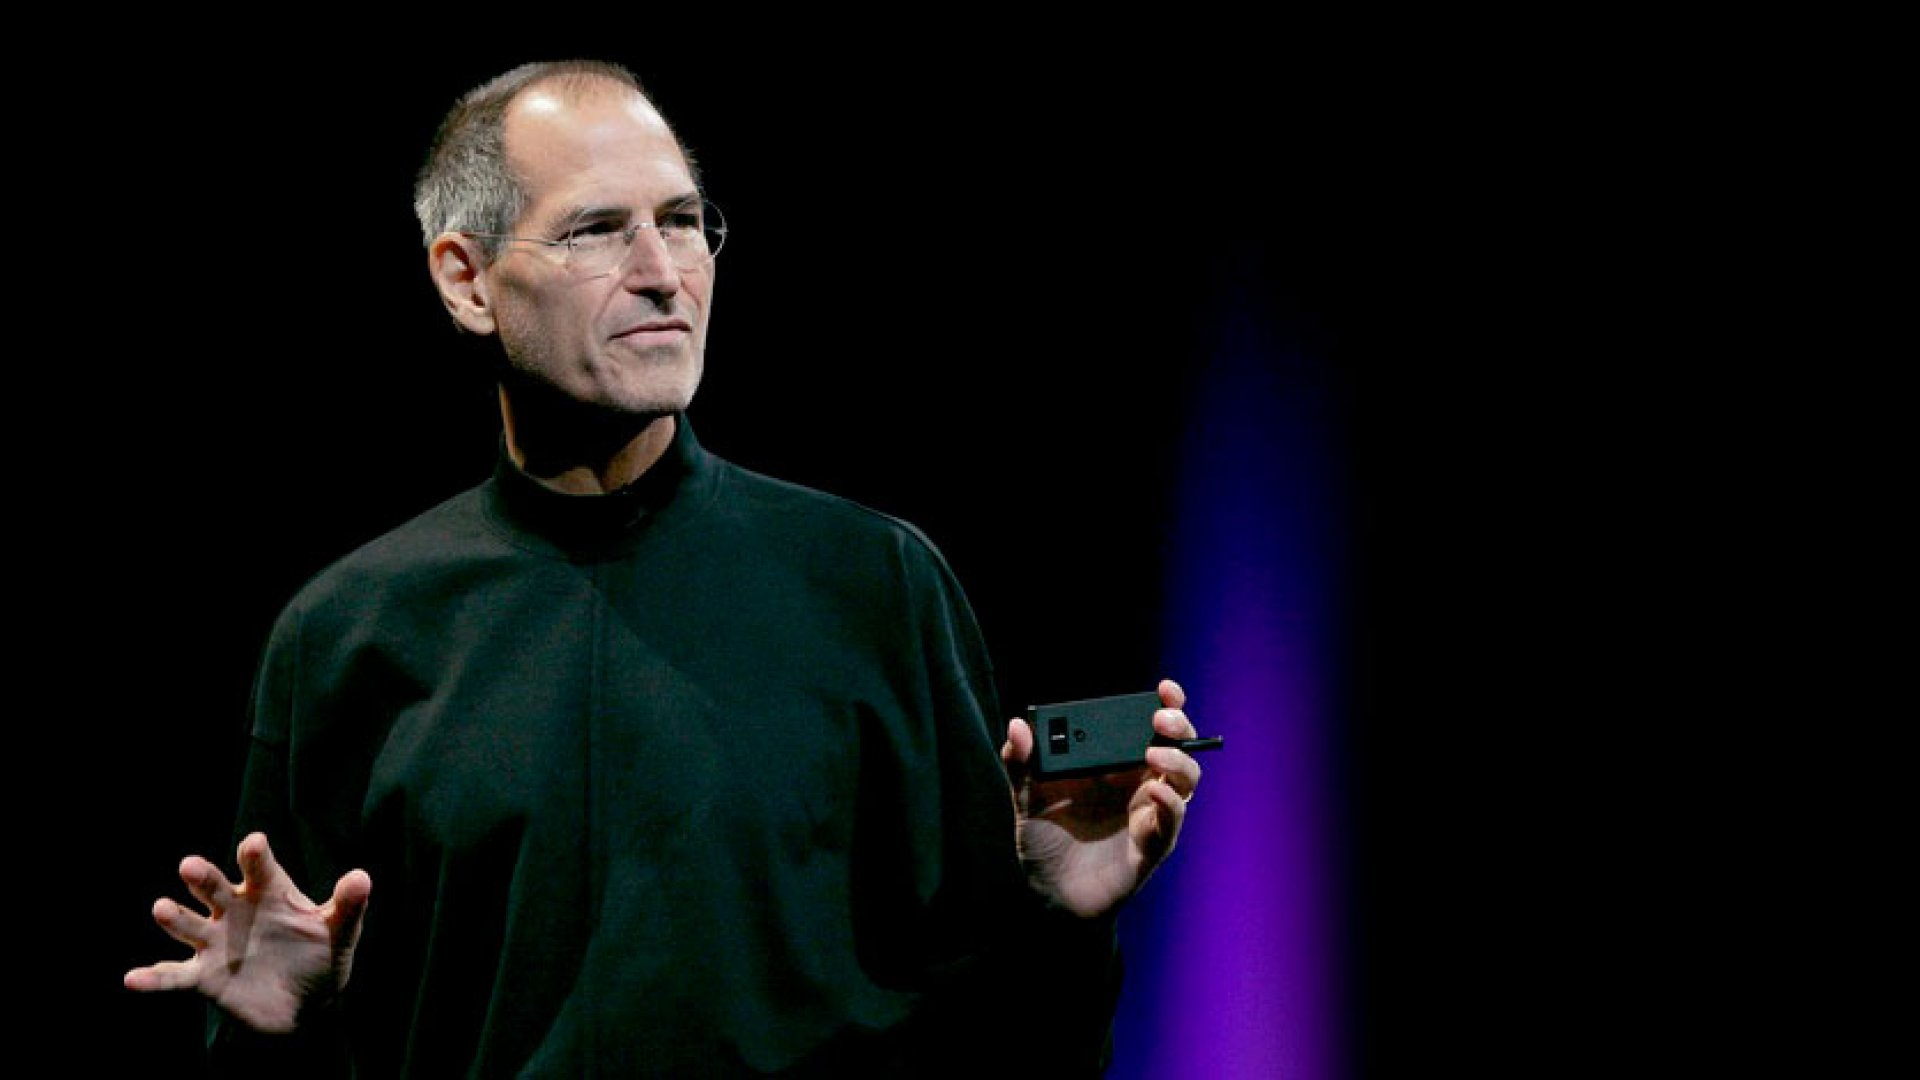 Steve Jobs wasn't successful just because of his brilliance---he truly understood what people wanted.